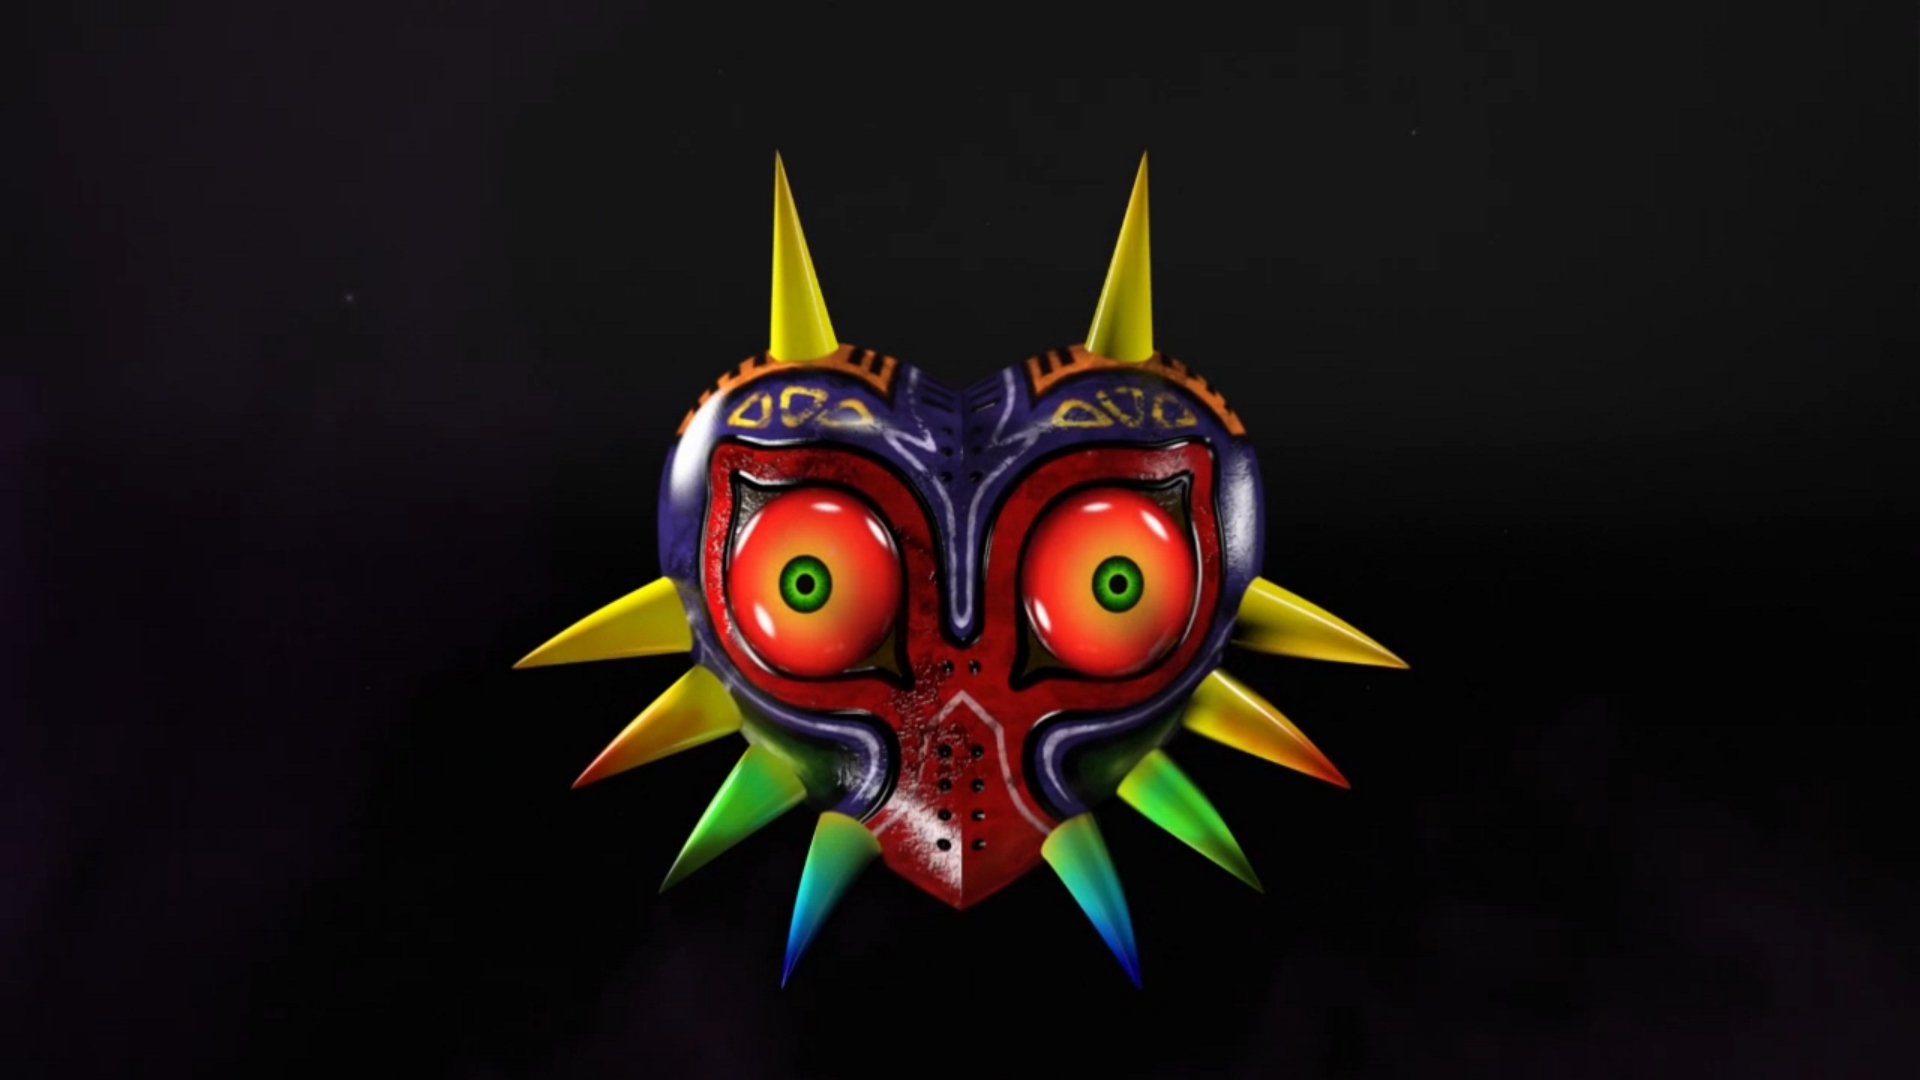 Majora S Mask Desktop Background: Majora's Mask 3D Wallpaper